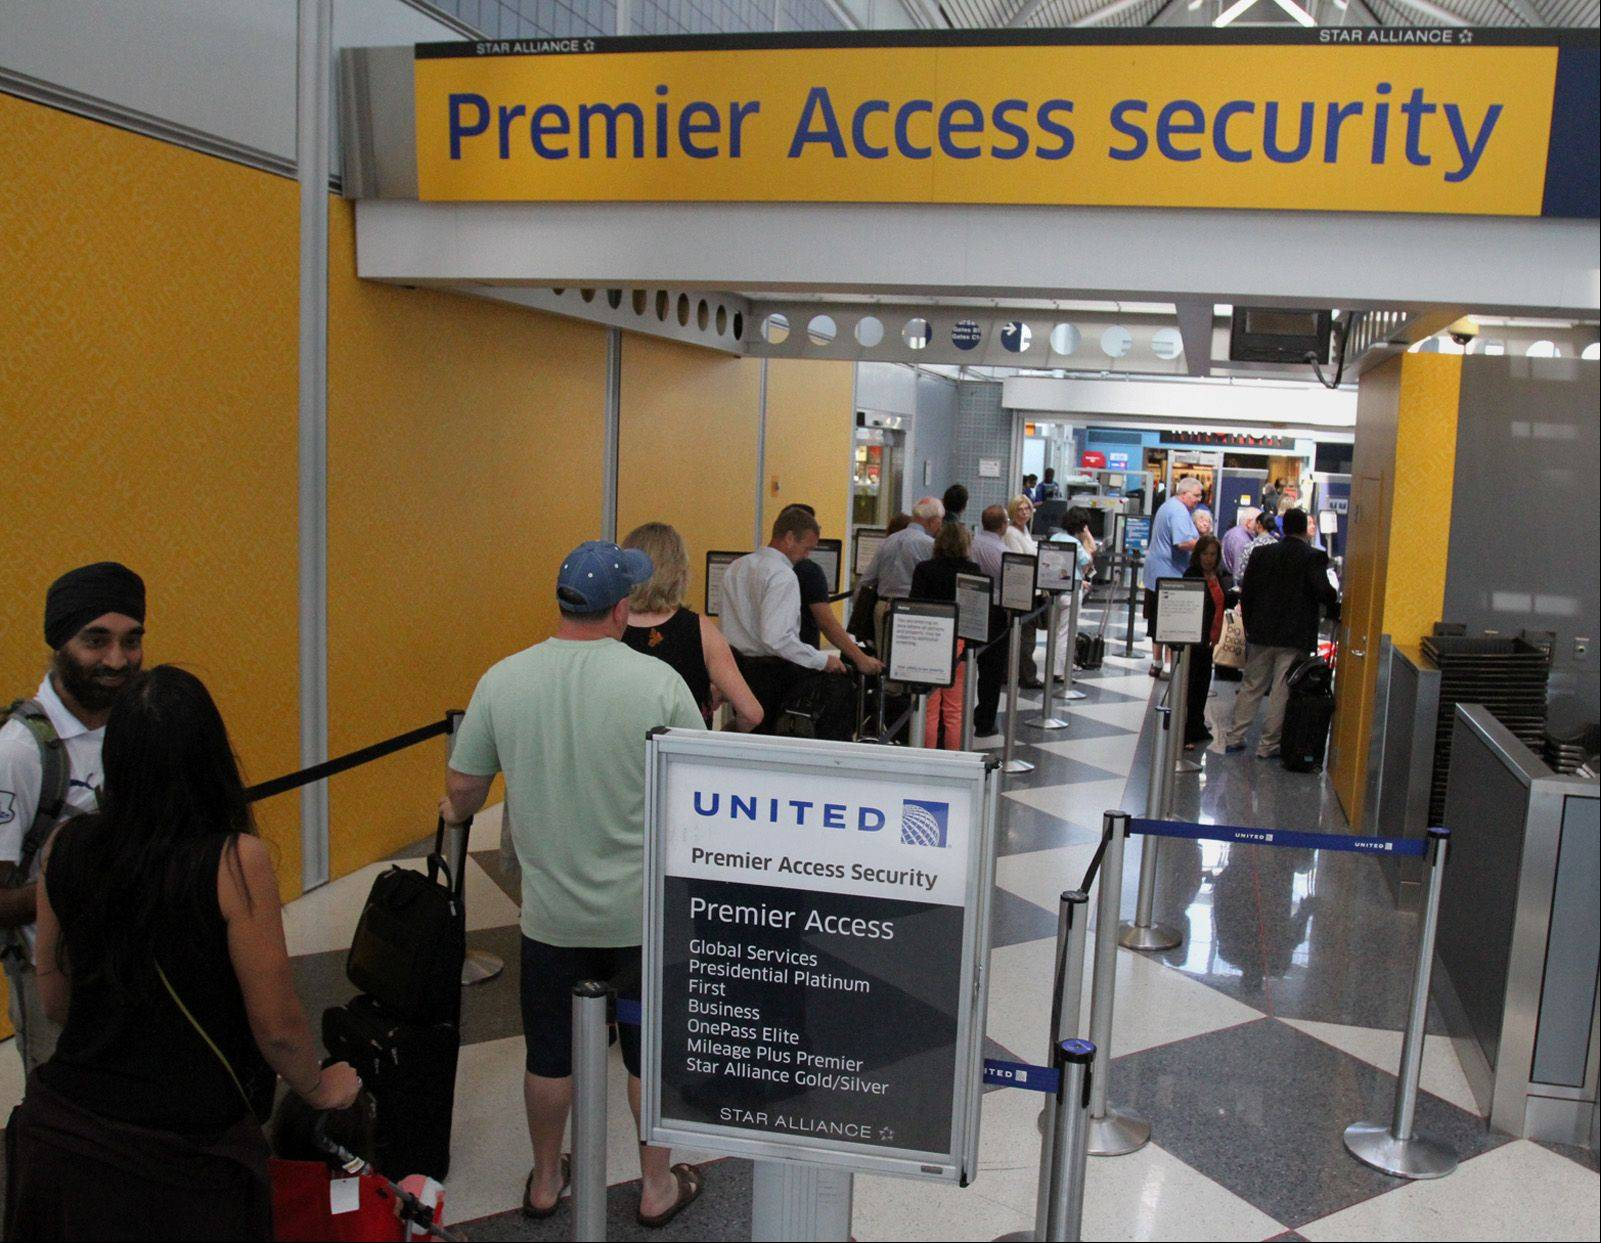 Passengers check in to see if they can go through a new streamlined security checkpoint for preapproved travelers at the United Terminal at O'Hare International Airport in Chicago on Wednesday.